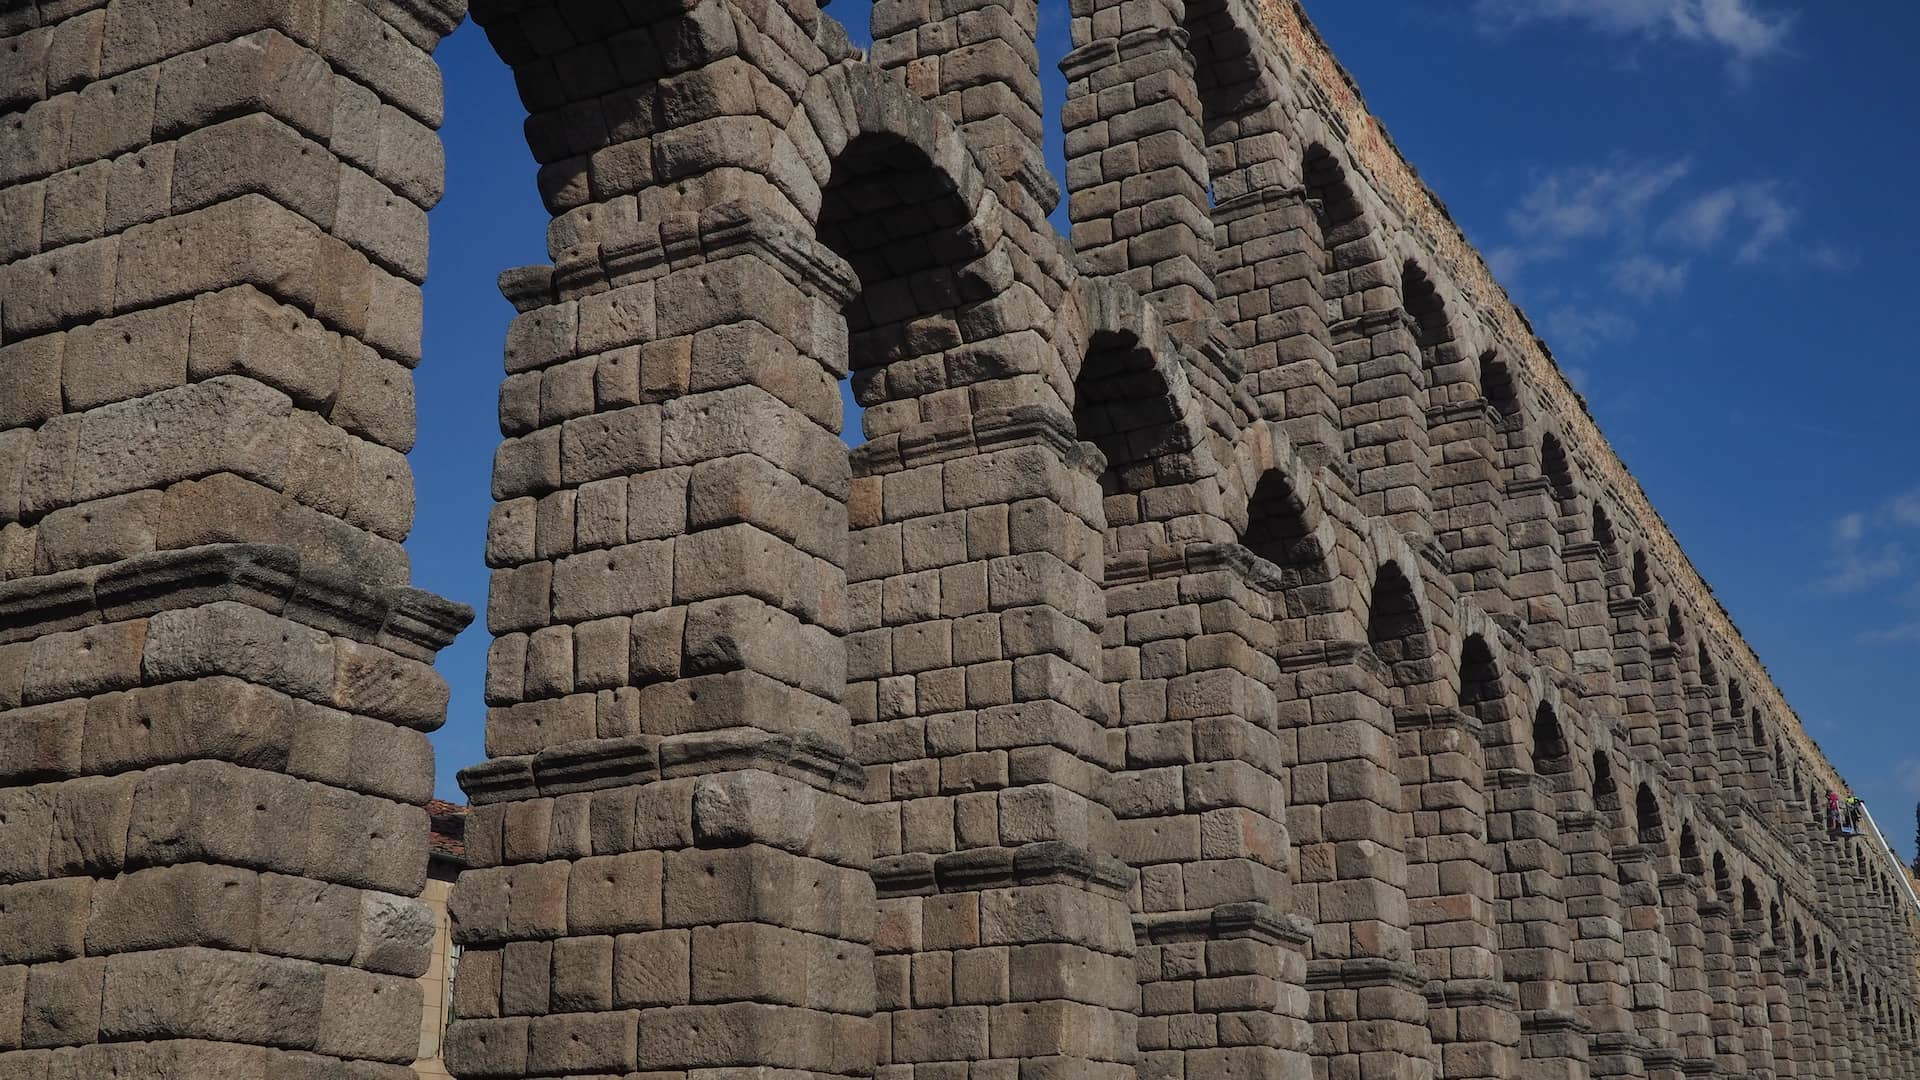 A two-storied stone aquaduct with multiple arches